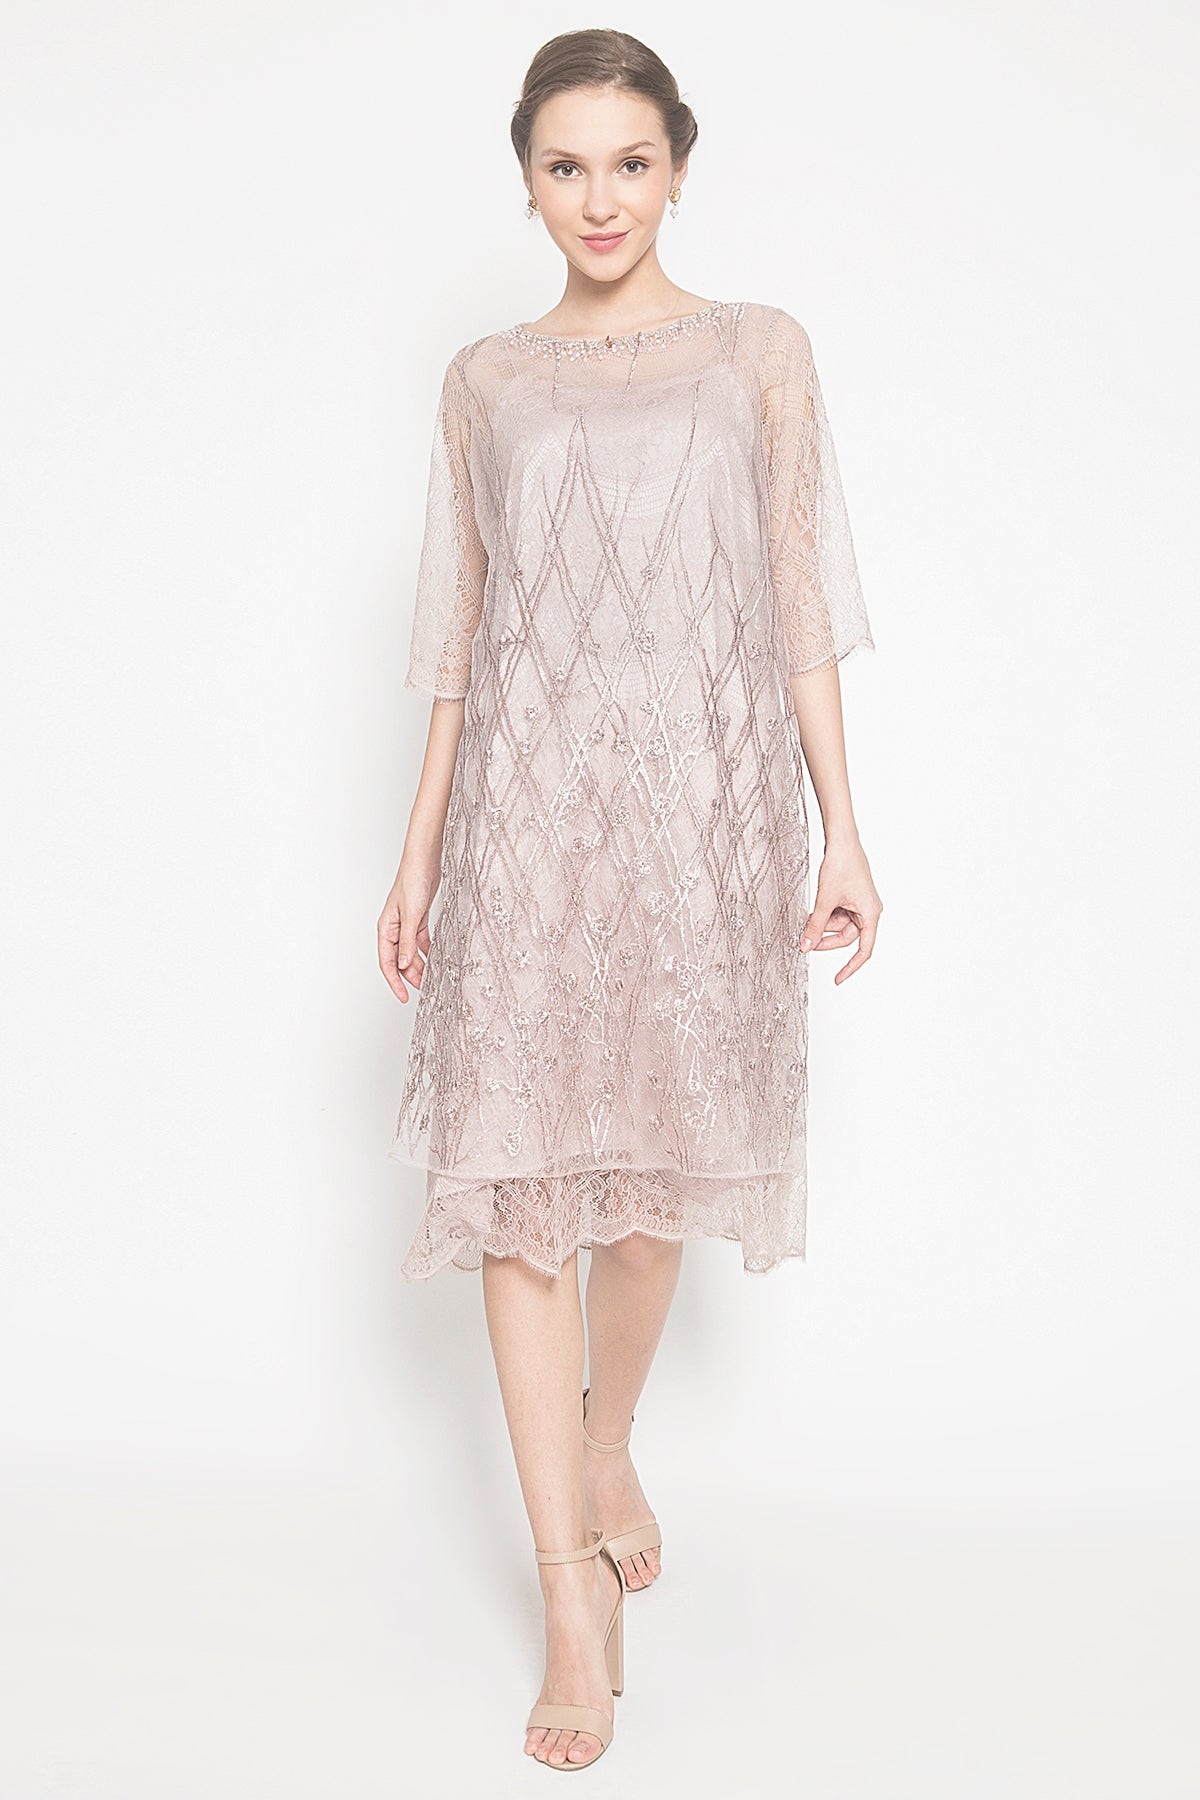 Vasala Dress in Lavender